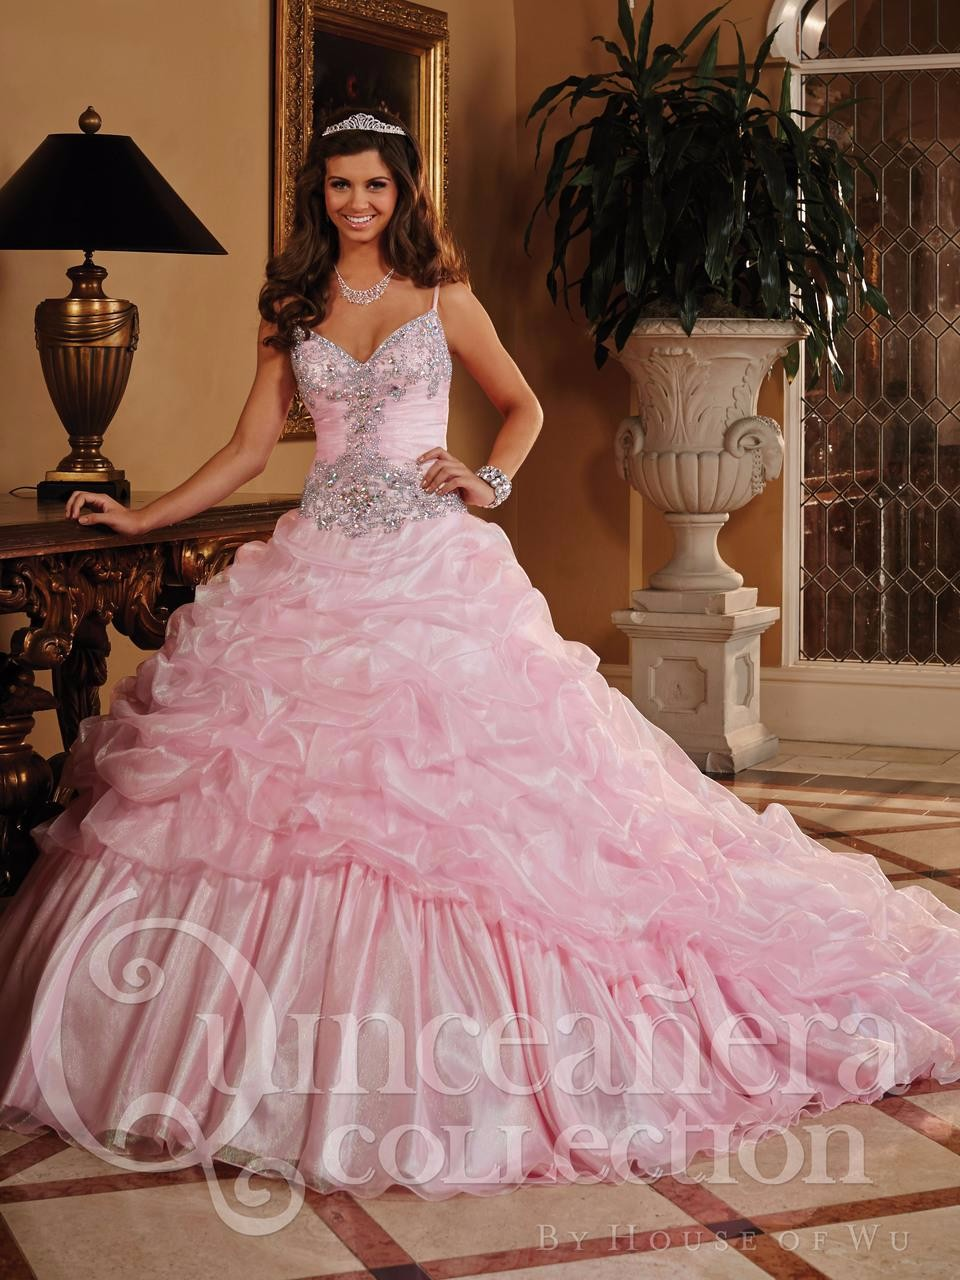 New-Arrival-Pink-2016-Quinceanera-Dresses-Ball-Gowns-Fashionable-Crystal-Ruffle-Vestidos-De-Quinceanera-Sweet-16